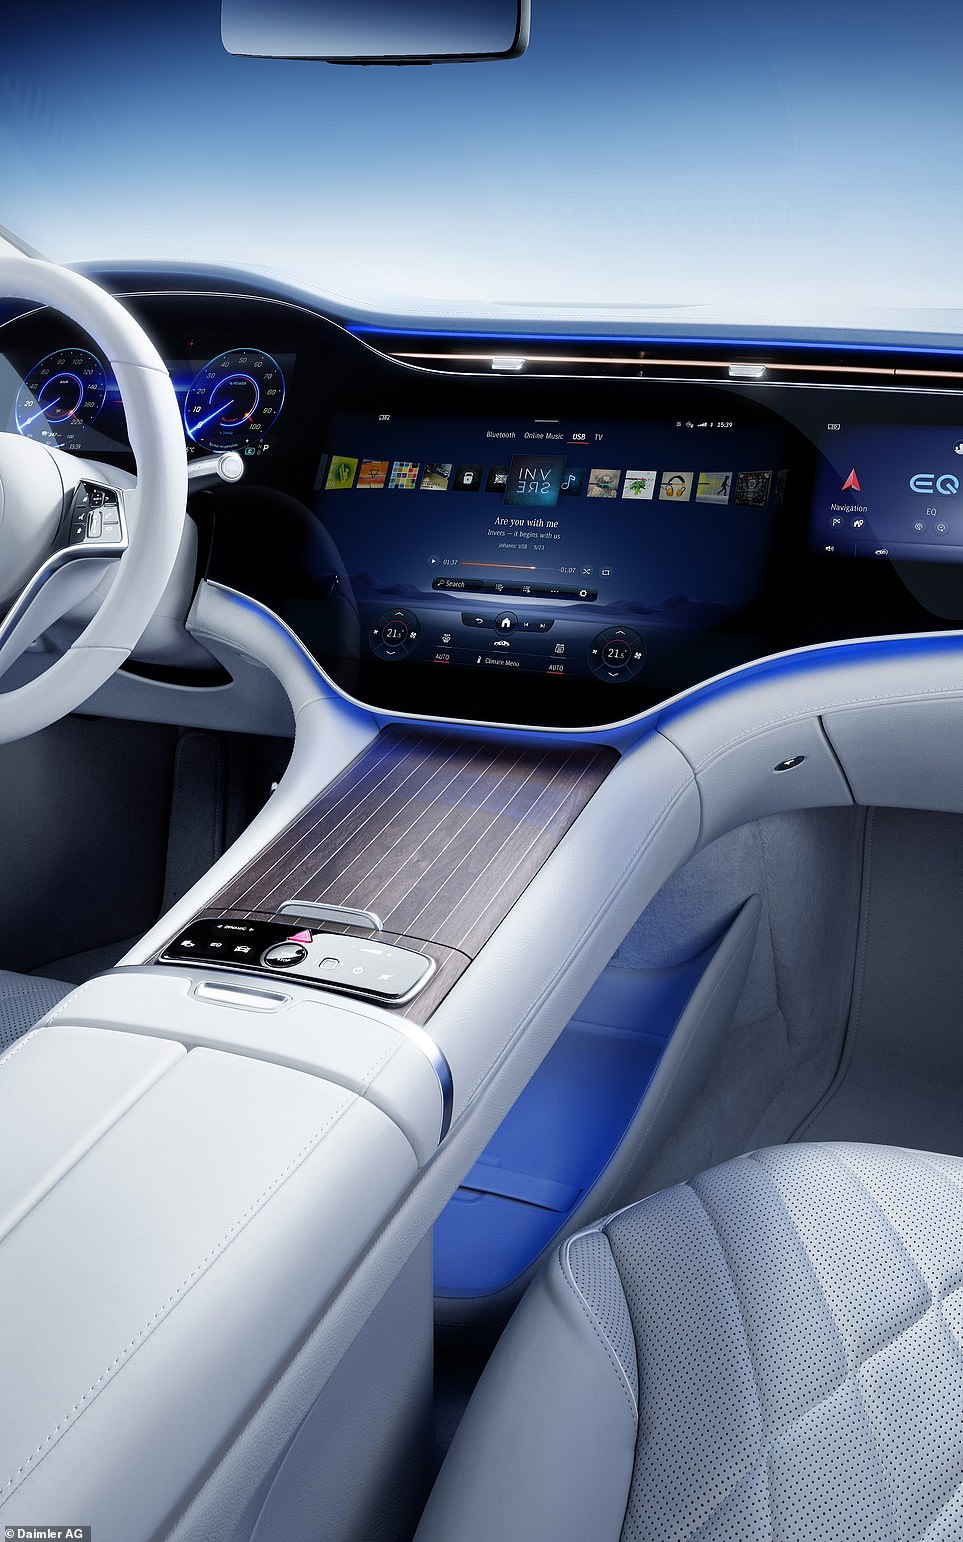 The section behind the steering wheel provides the driver's instrument cluster while the largest part of the display is for infotainment functions